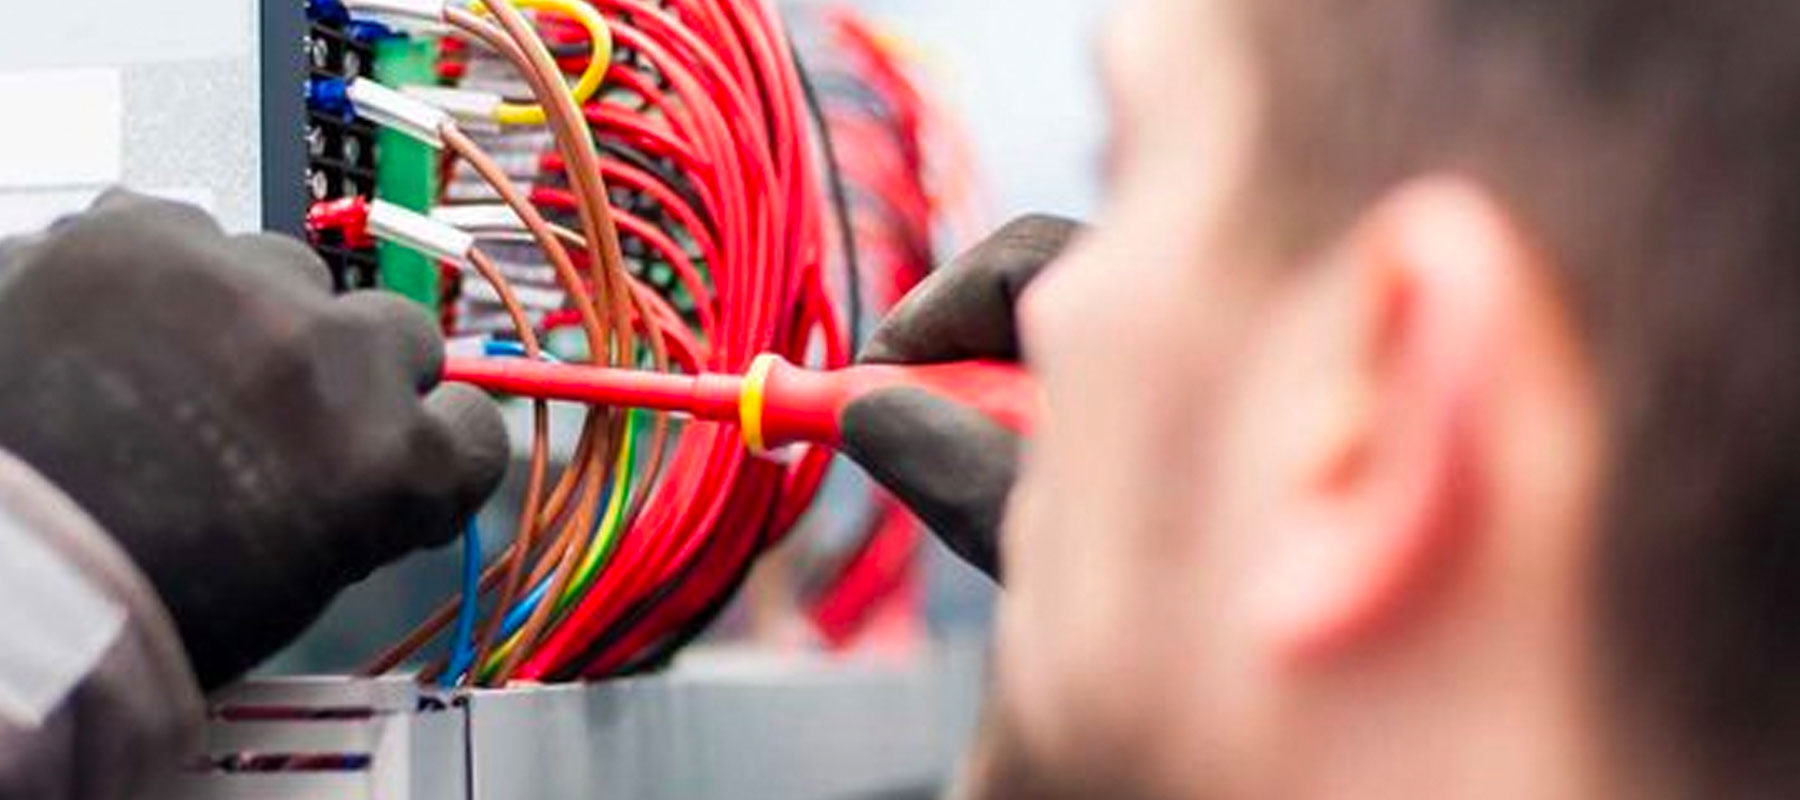 Electrical Repair Services Anaheim   US Electrical